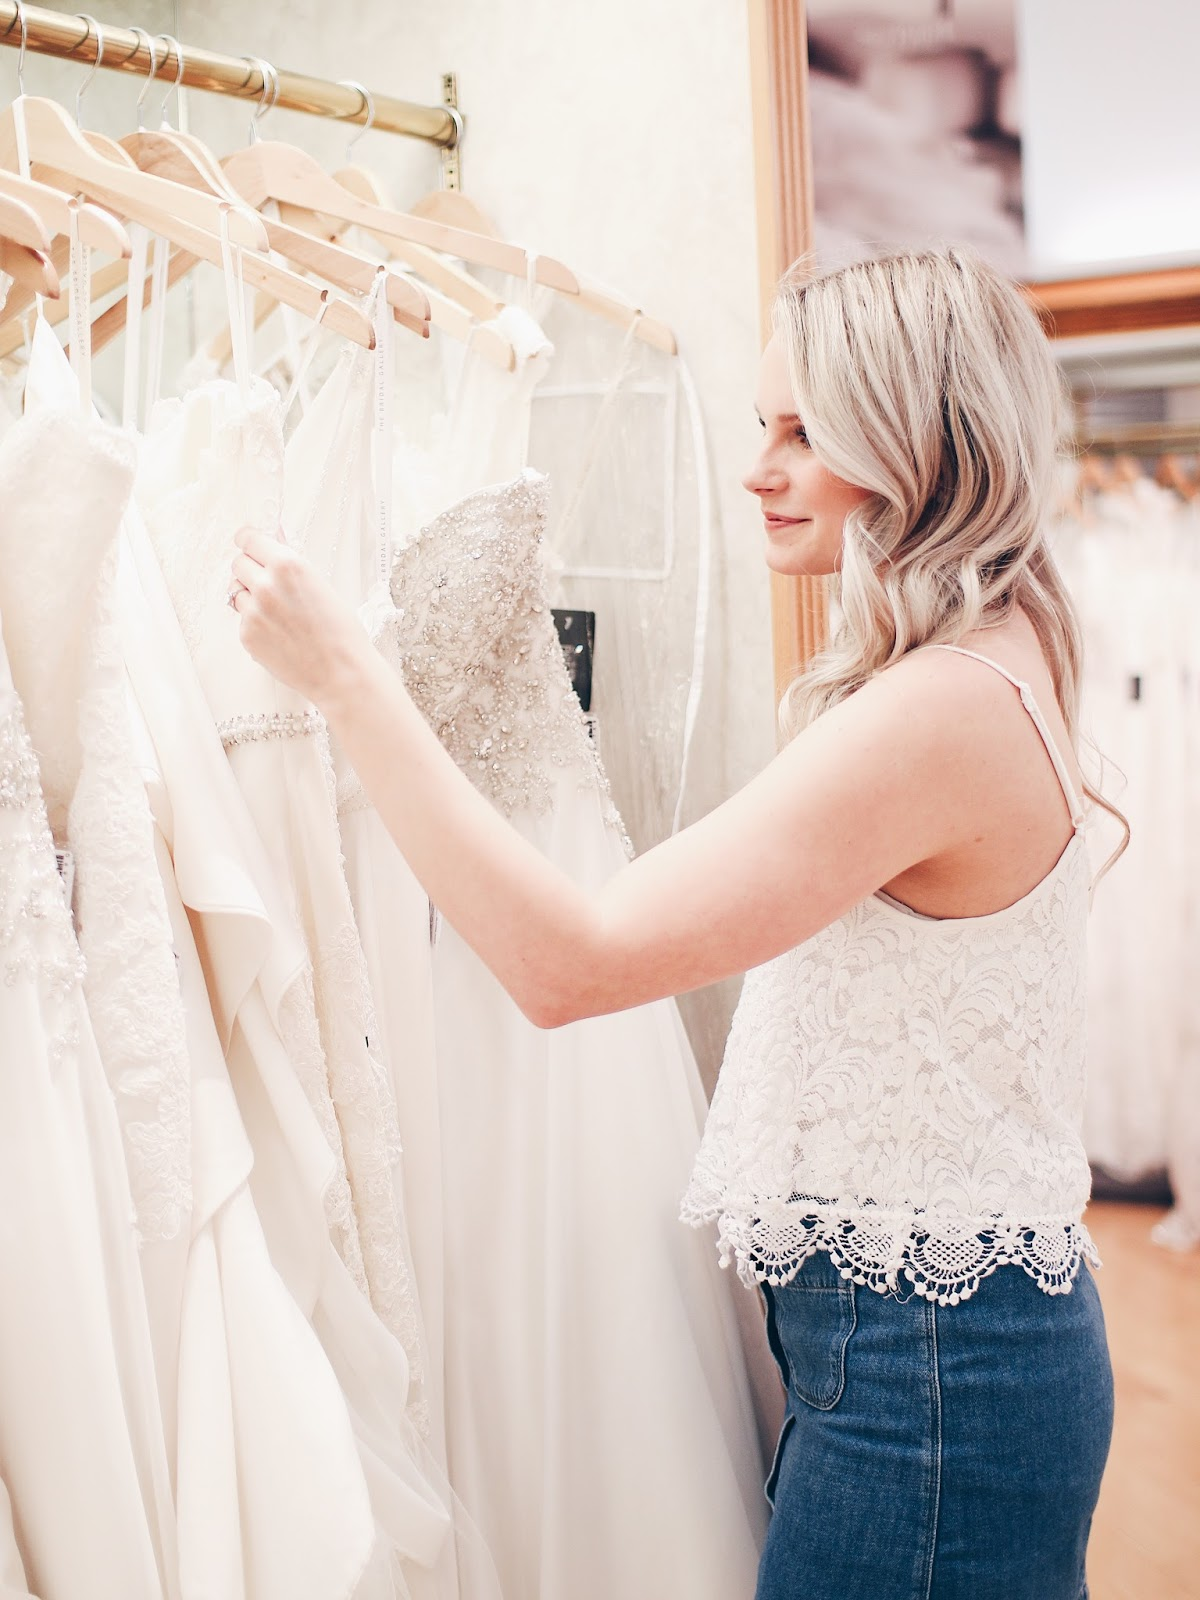 what to wear to a bridal fitting